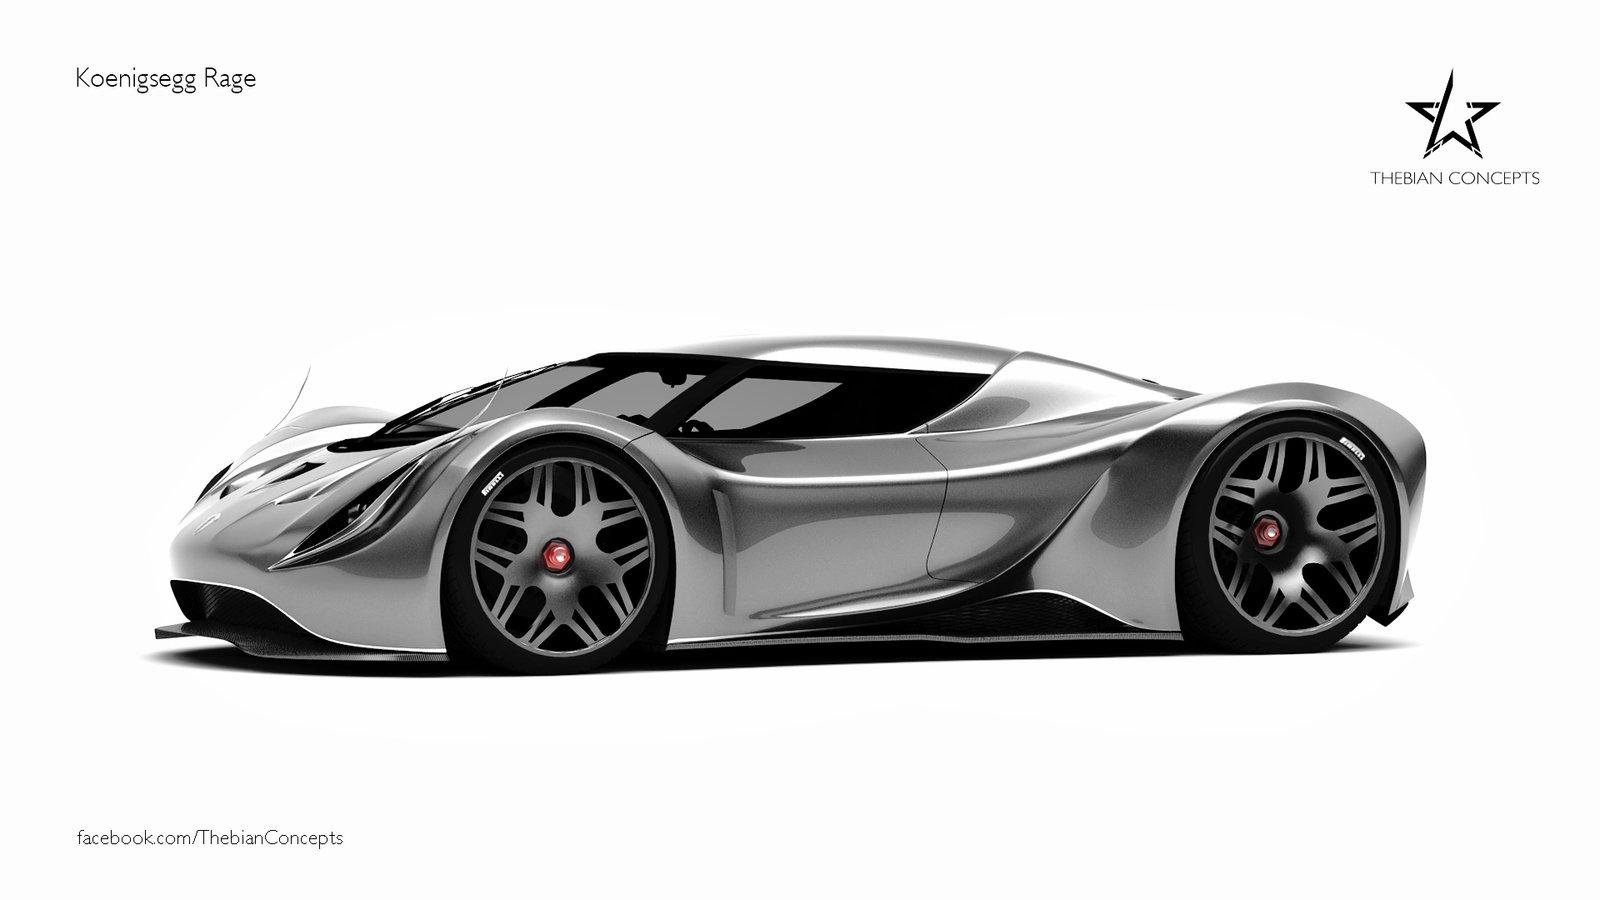 New baby Koenigsegg supercar gets rendered - ForceGT.com